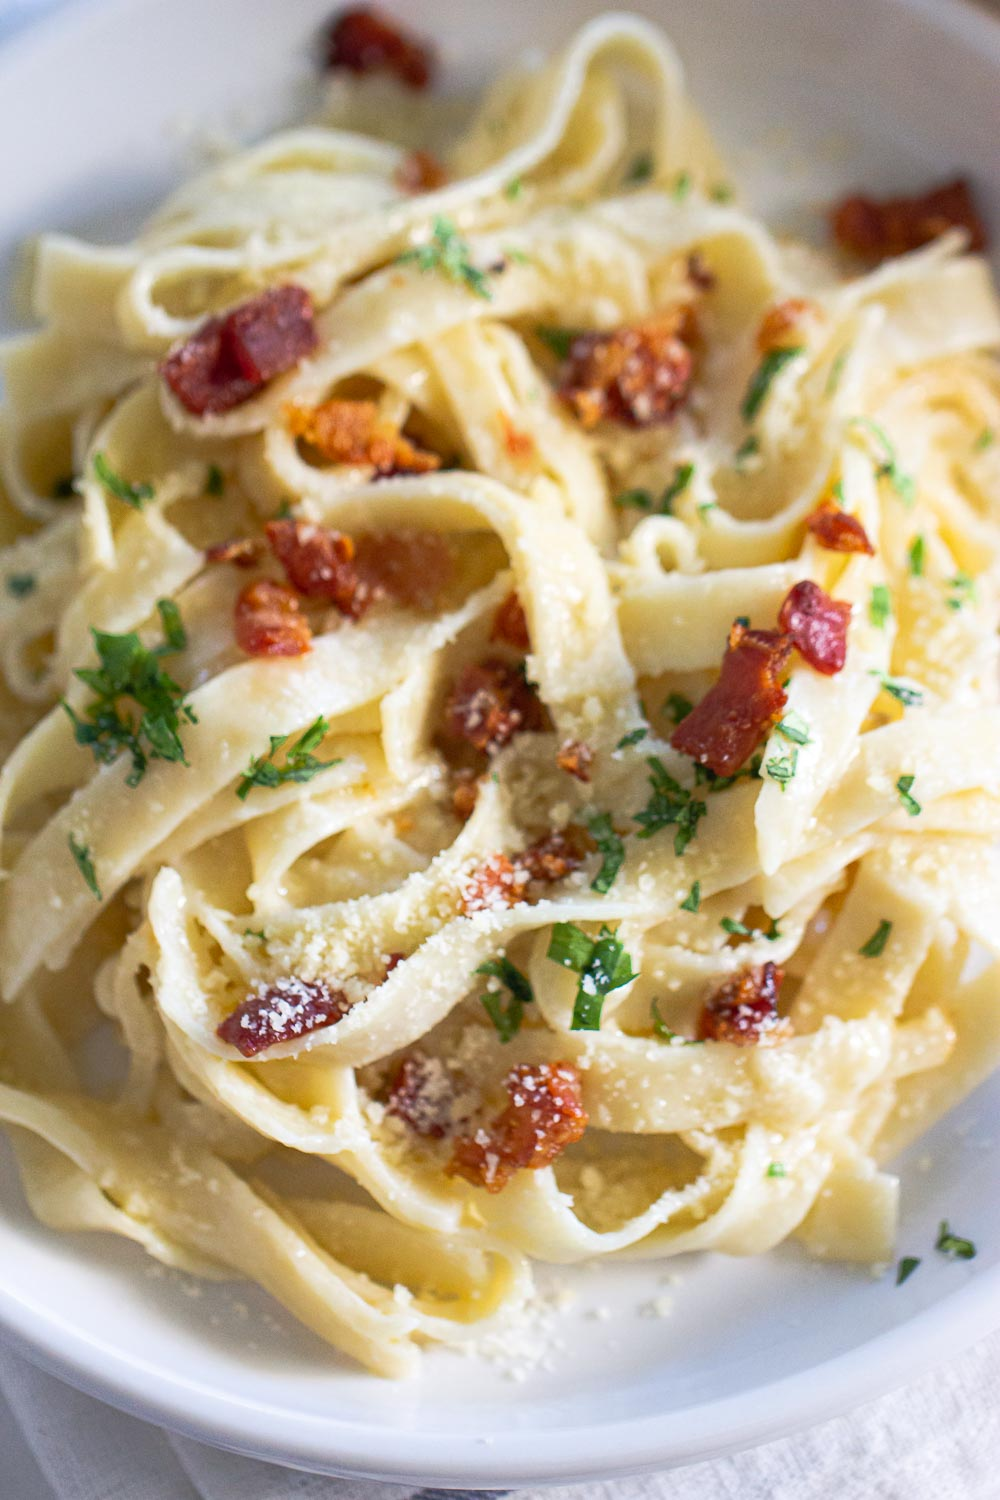 This creamy pear and mascarpone pasta get its kick from pear tossed in mascarpone cheese and crispy prosciutto. Ready on the table in 15 minutes and it's perfect for a quick weeknight recipe.